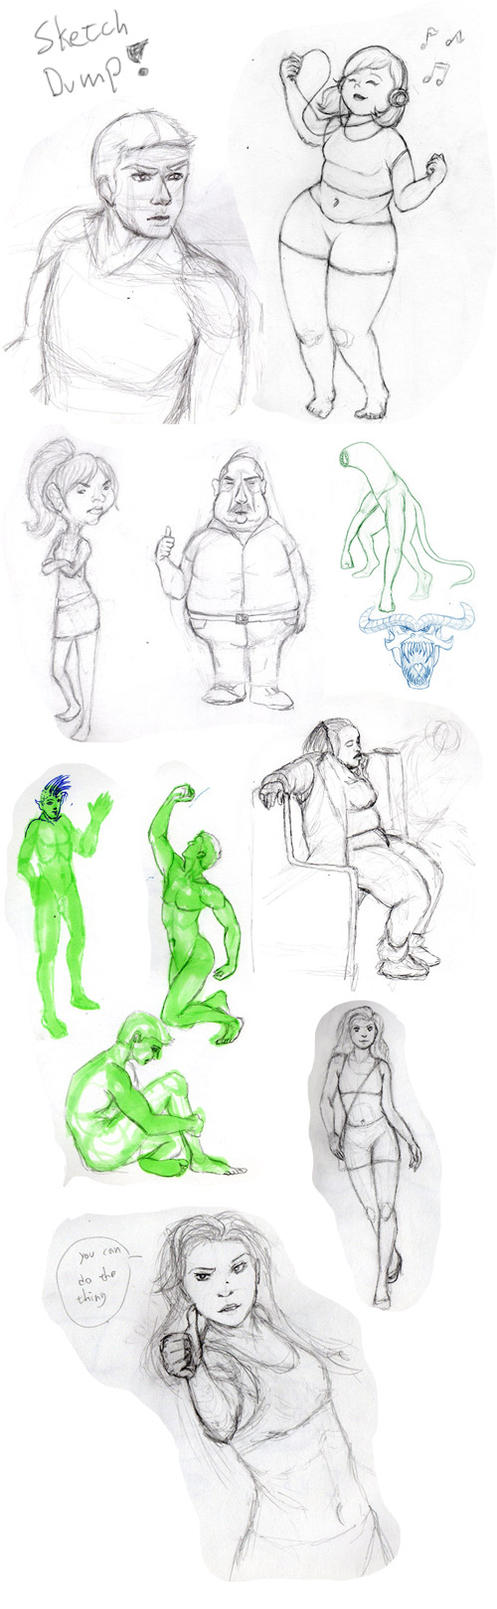 Sketch Dump 2 by GosterMonster